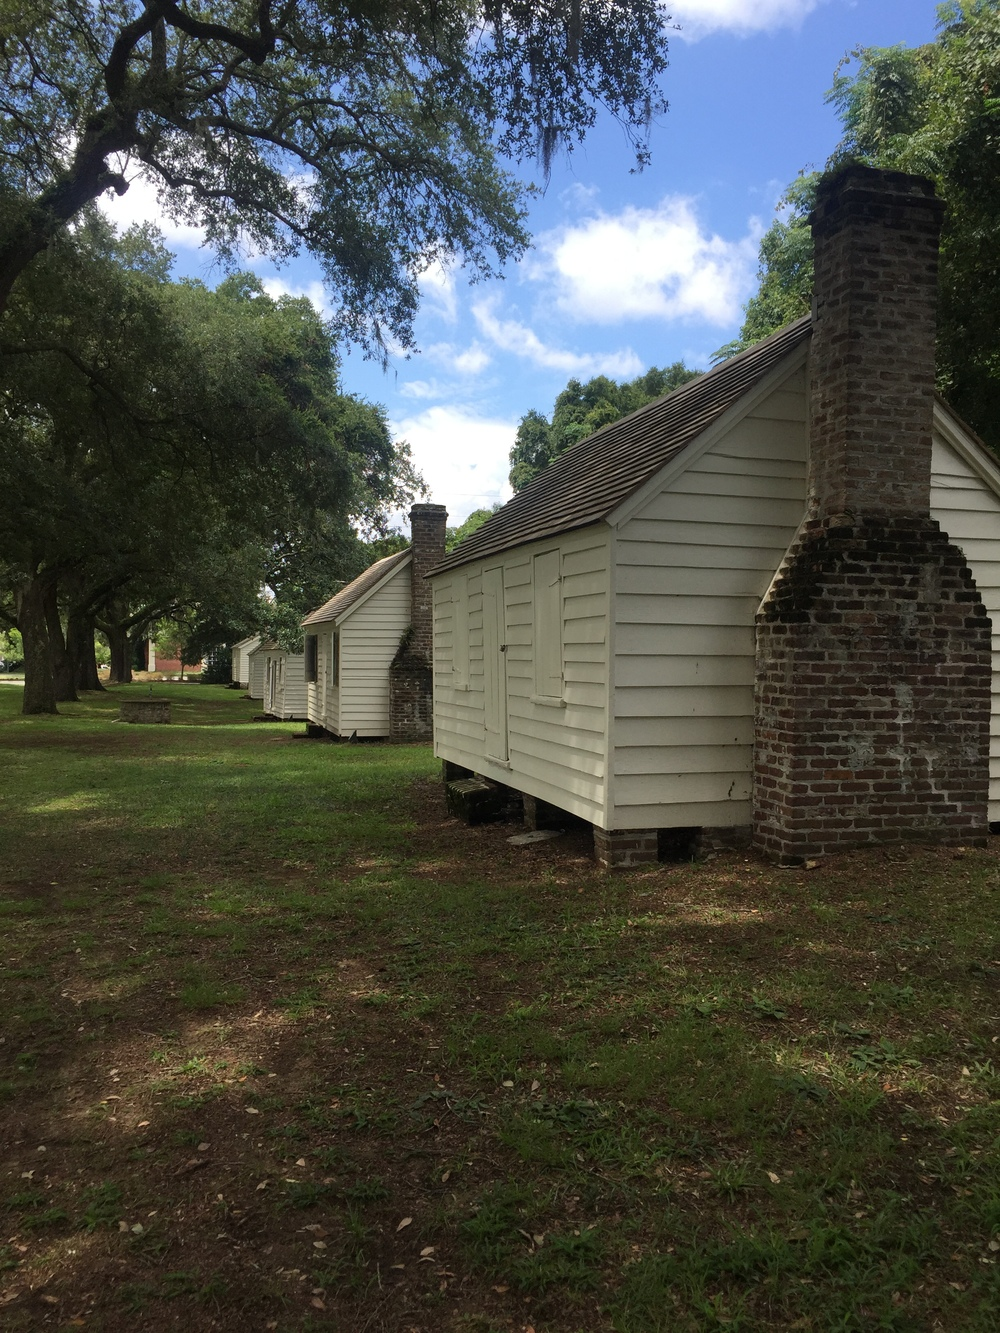 Much of the information shared is focused on the people who lived in these slave cabins instead of those that lived in the plantation house.